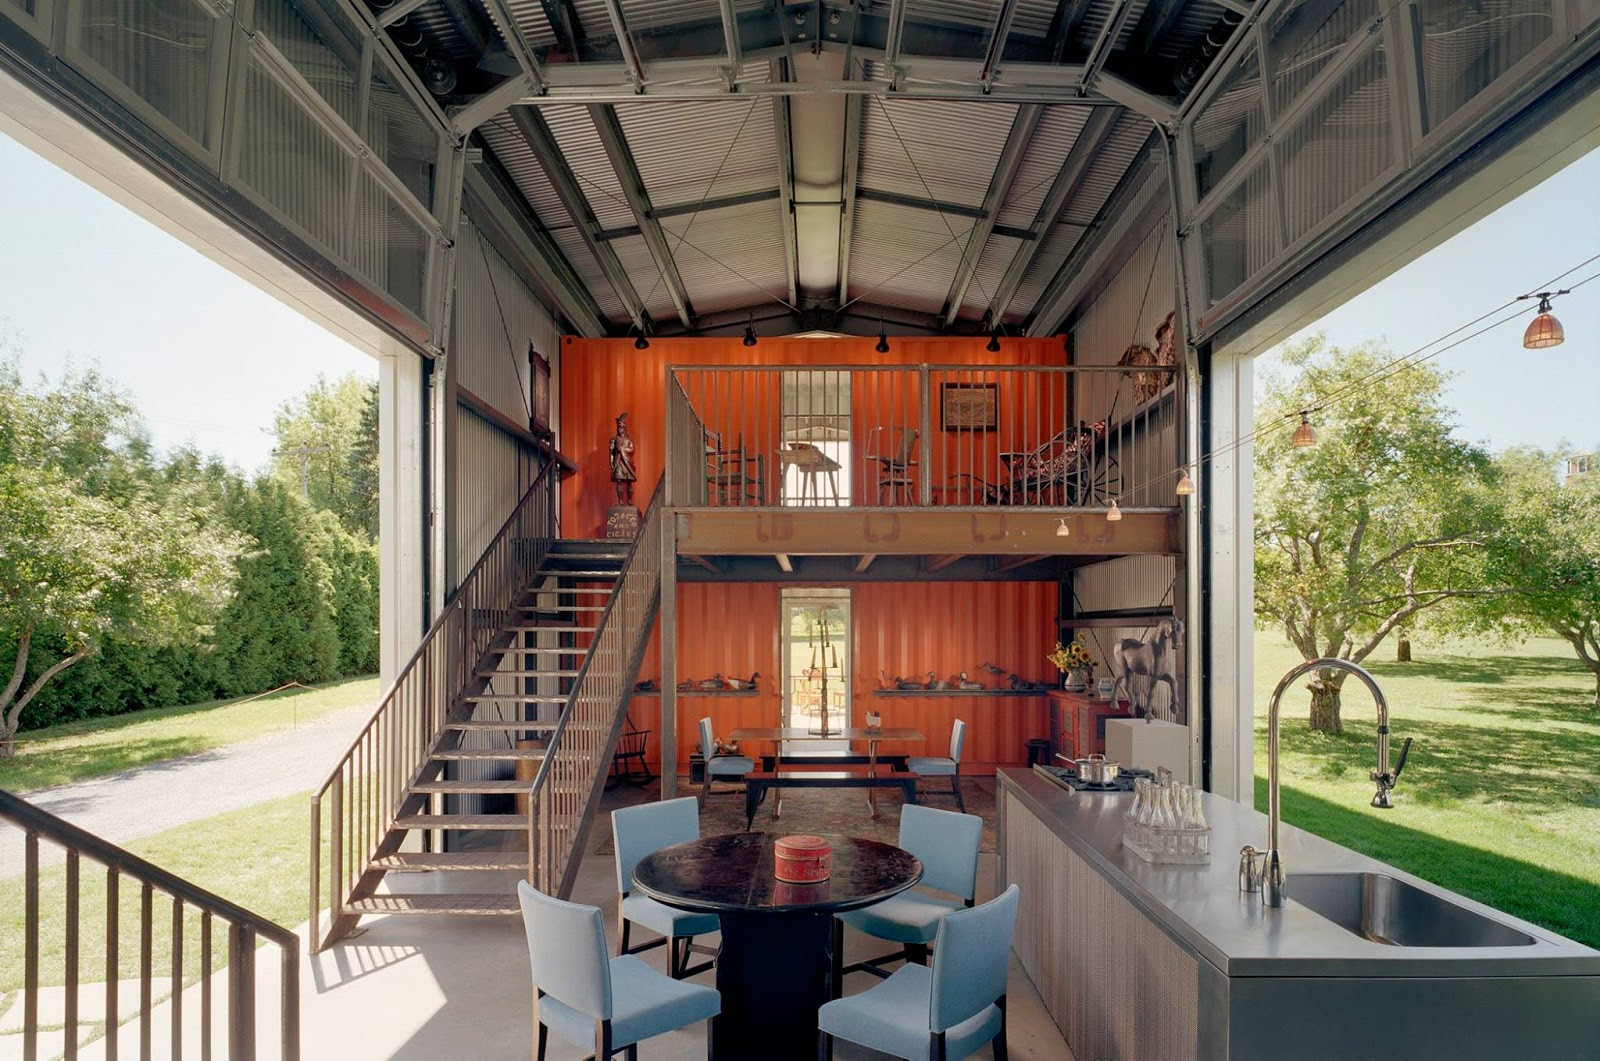 Best Kitchen Gallery: Shipping Container Homes Beautiful Container Home By Adam Kalkin of Beautiful Container Homes on rachelxblog.com